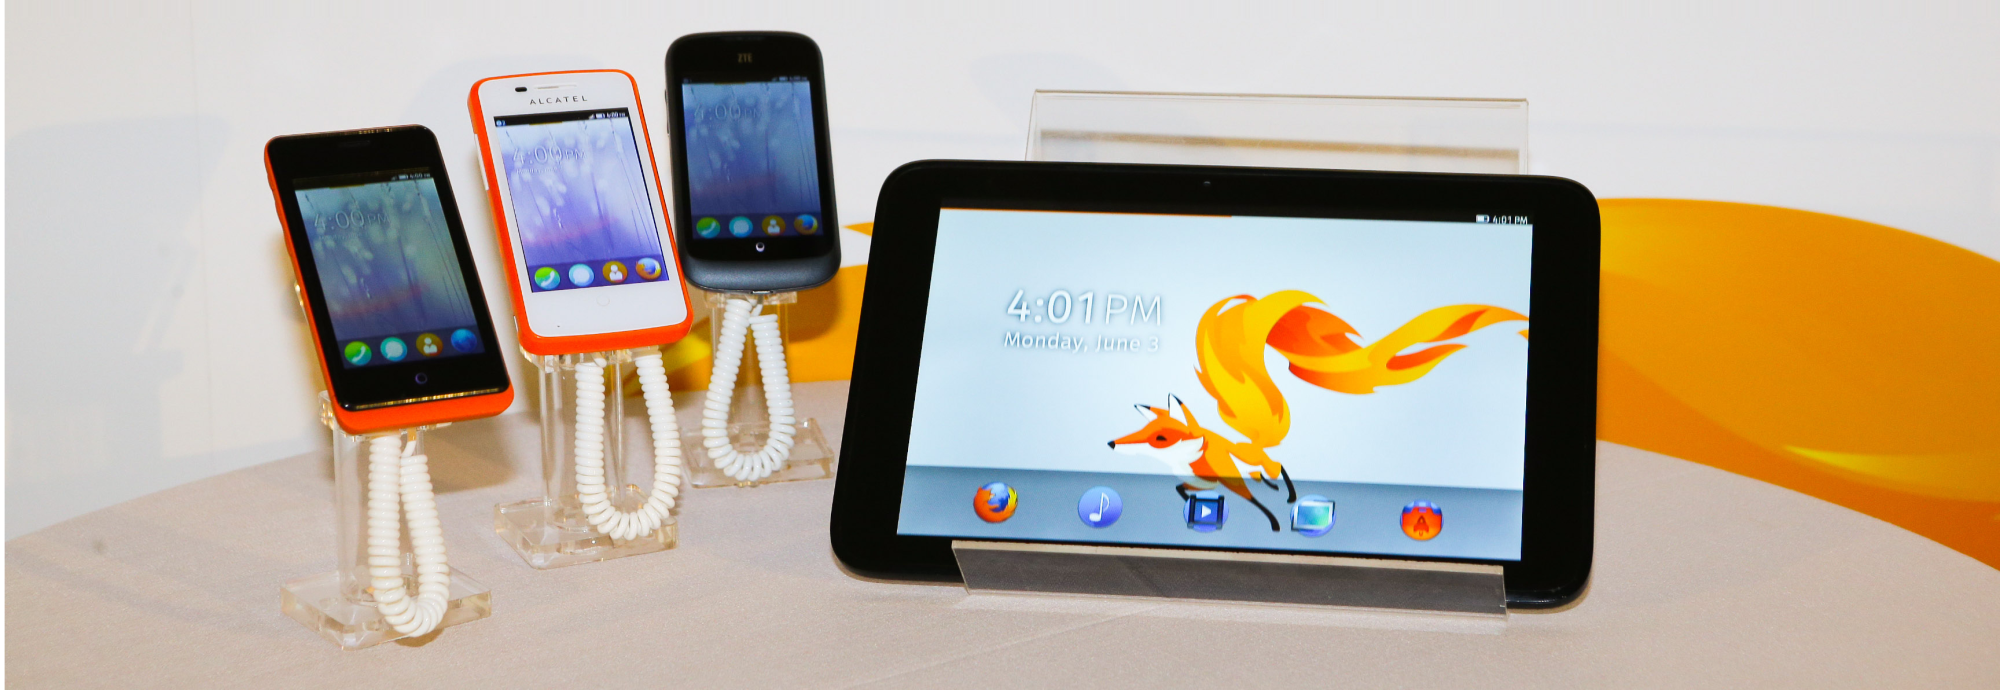 firefox os devices Mozilla partners with Panasonic to bring Firefox OS to the TV, details progress on tablet and desktop versions